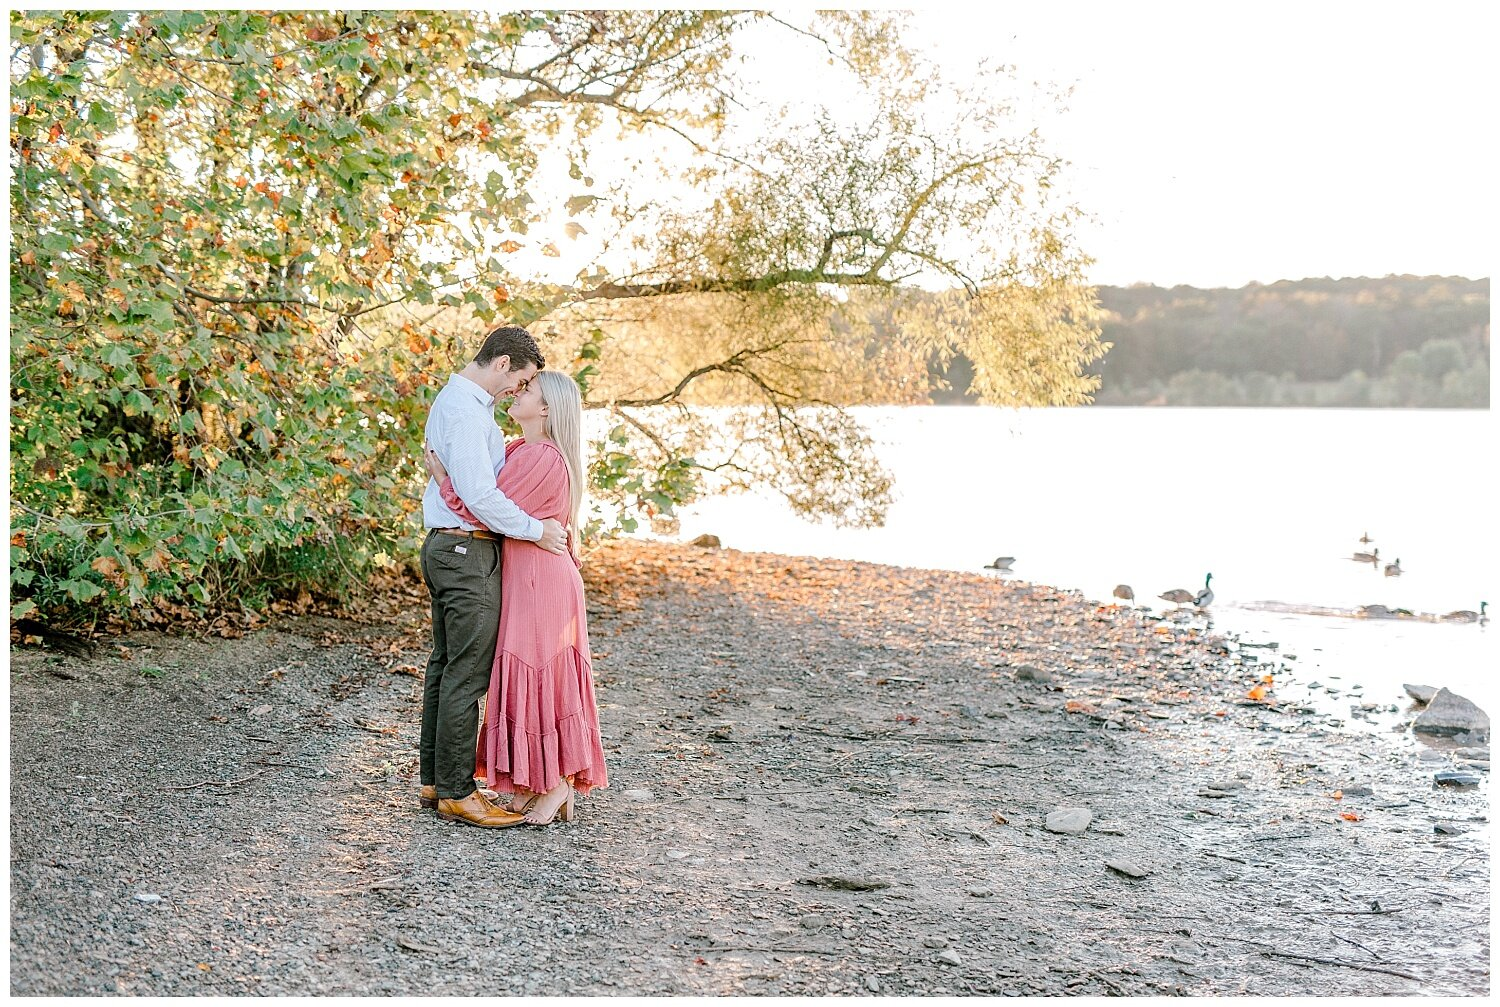 Peace Valley Park Doylestown bucks county PA fall sunrise engagement session  lehigh valley pennsylvania based wedding and lifestyle photographer Jeannie Lytle of Lytle Photography Company_0007.jpg